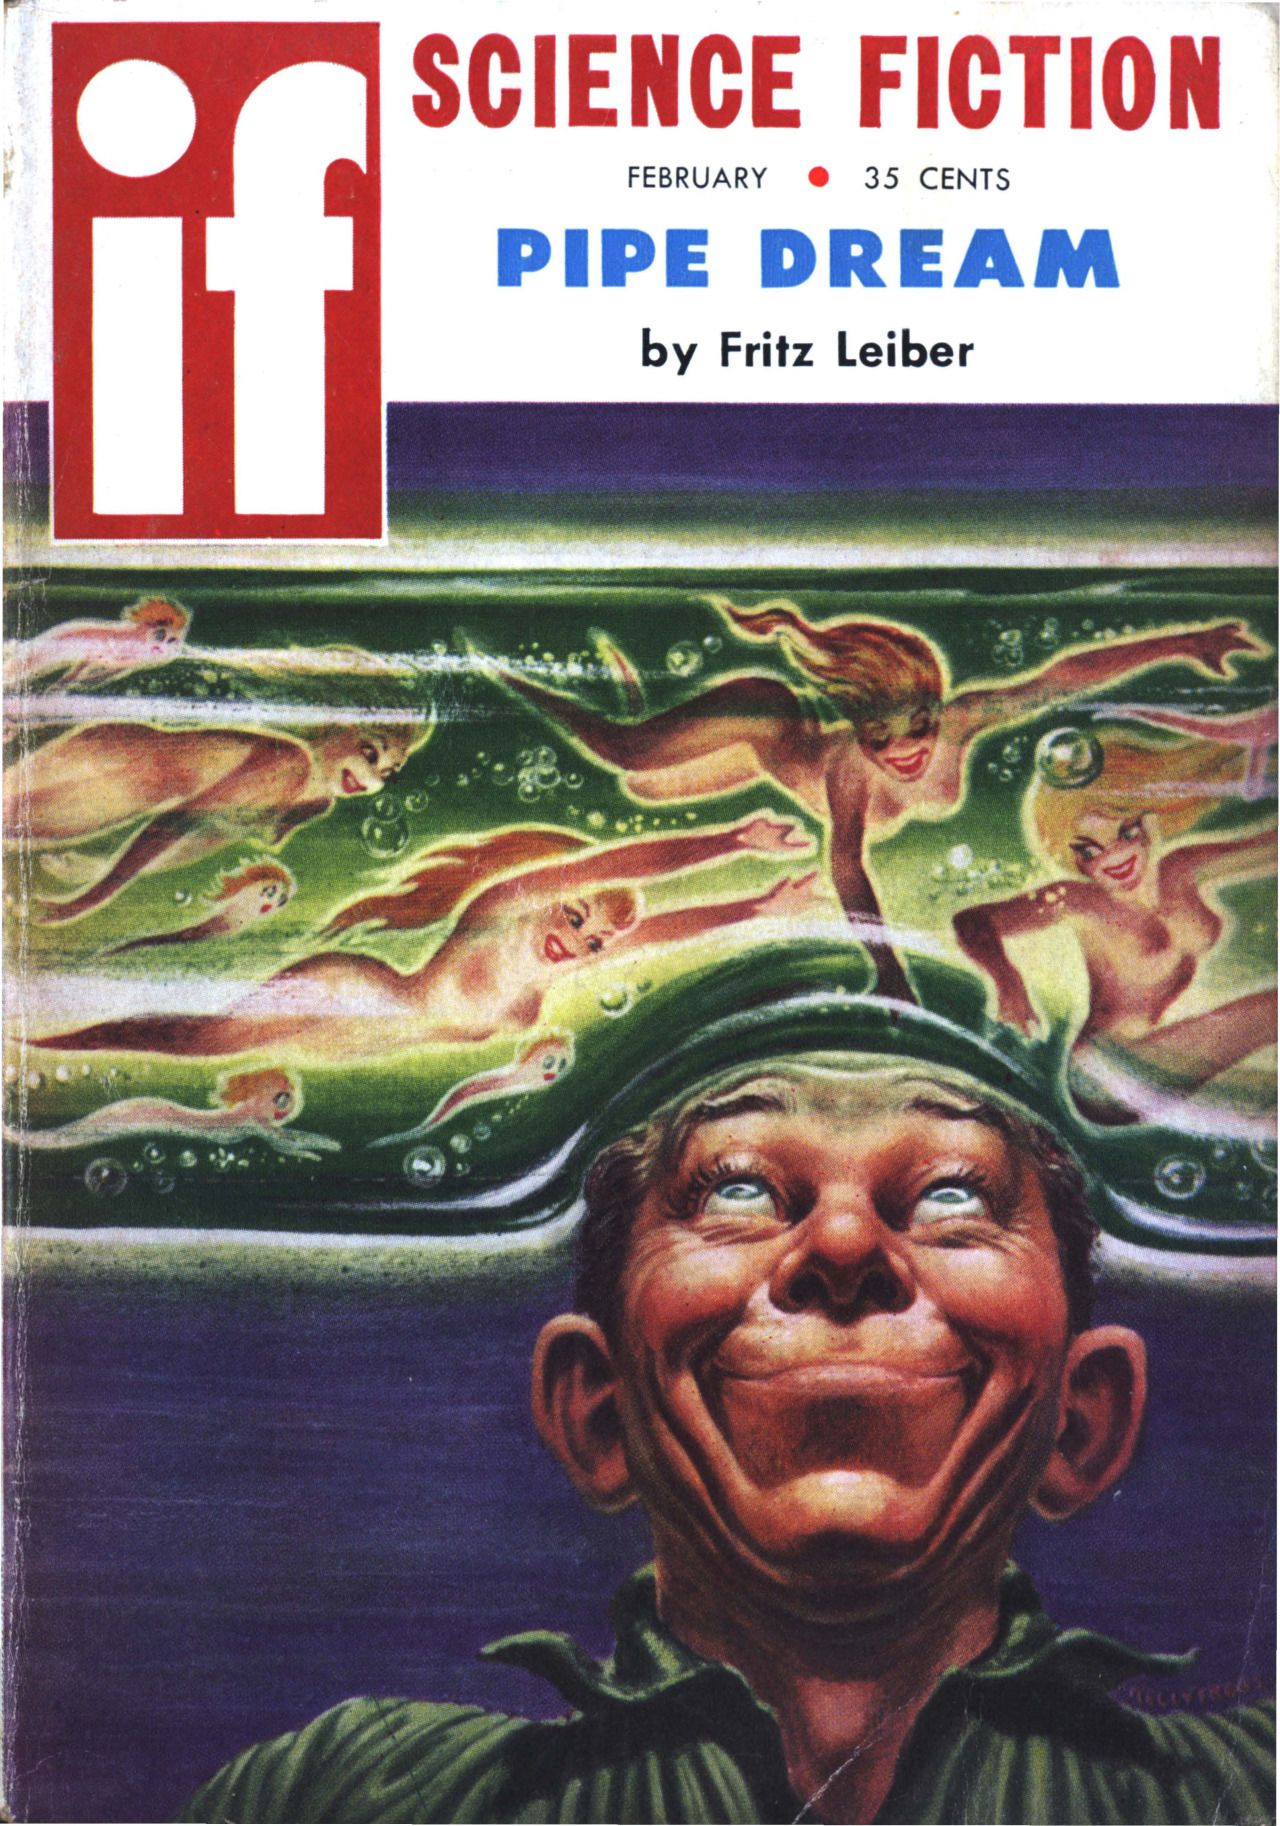 """Ifvol 9 no 2, February 1959. Cover art by Kelly Freas illustrating""""Pipe Dream"""" by Fritz Leiber."""